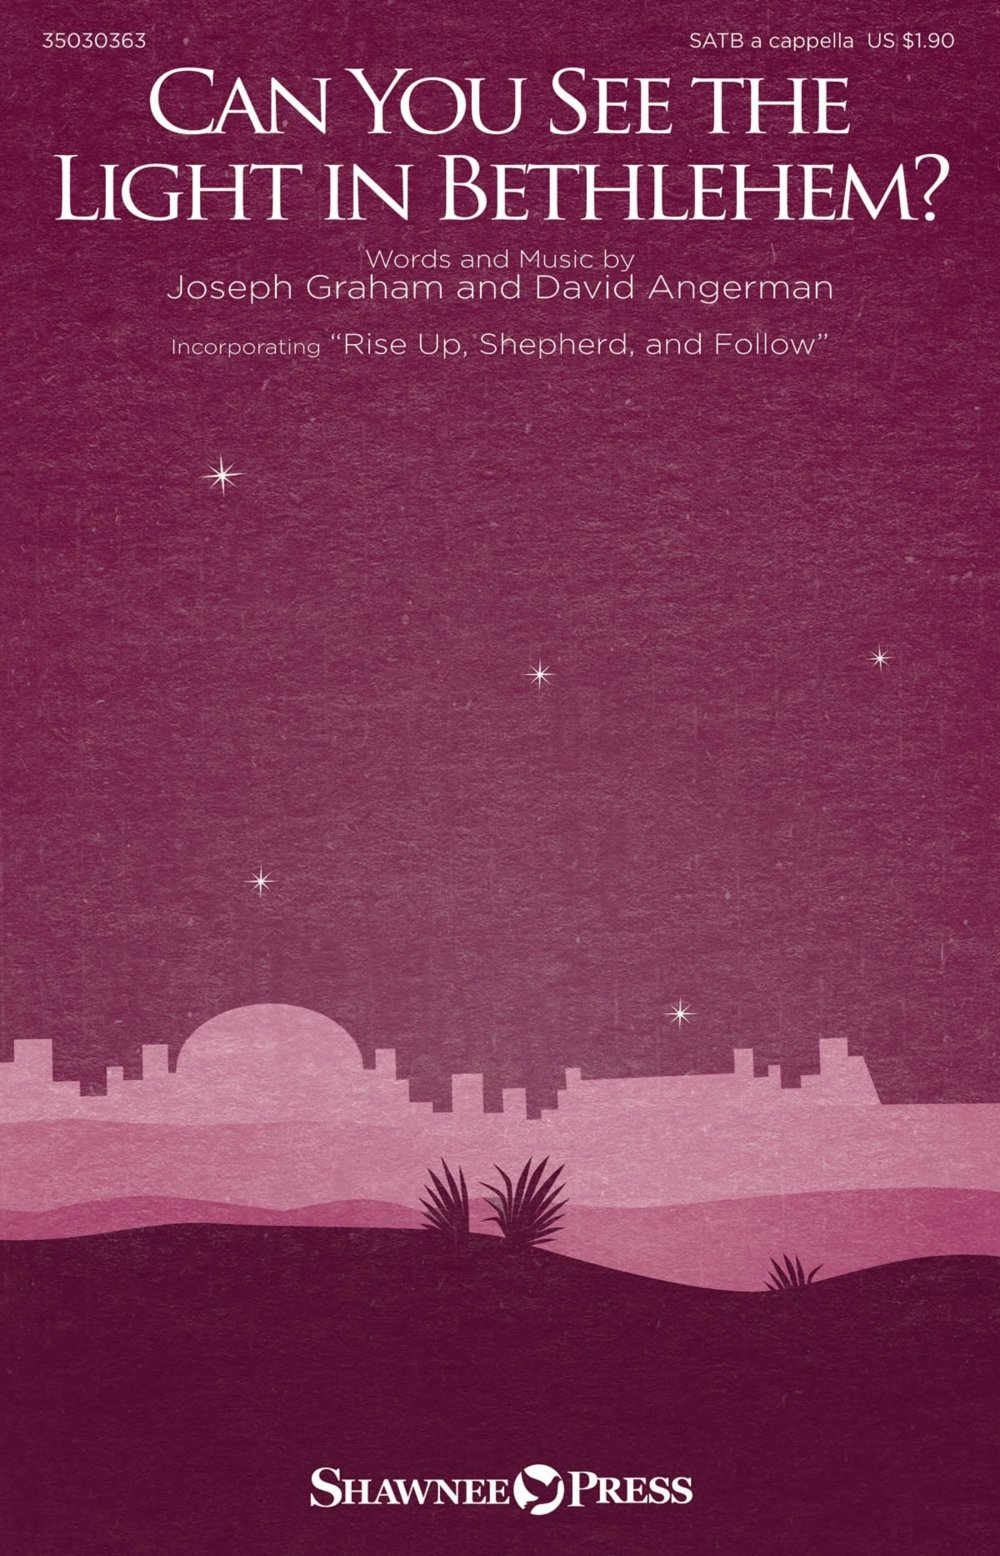 Read Online Shawnee Press Can You See the Light in Bethlehem? SATB a cappella composed by Joseph Graham PDF